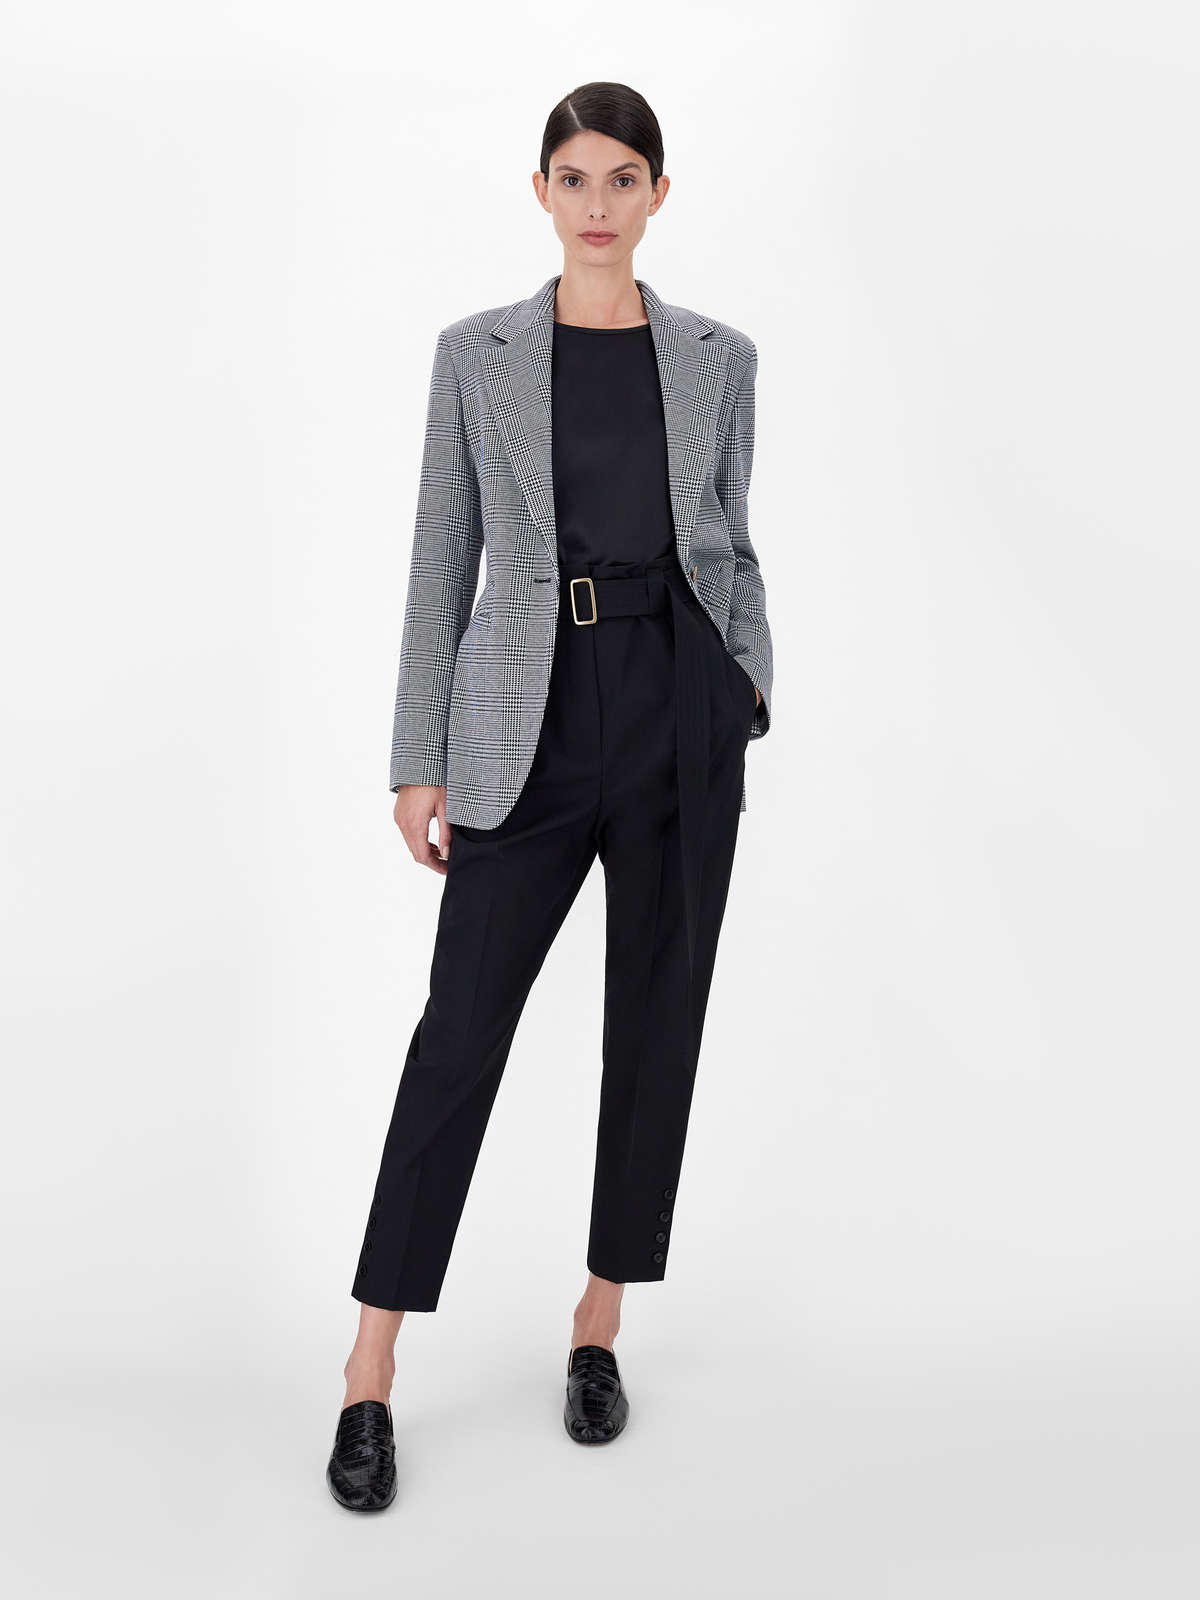 Cotton jersey and jacquard viscose blazer - Max Mara